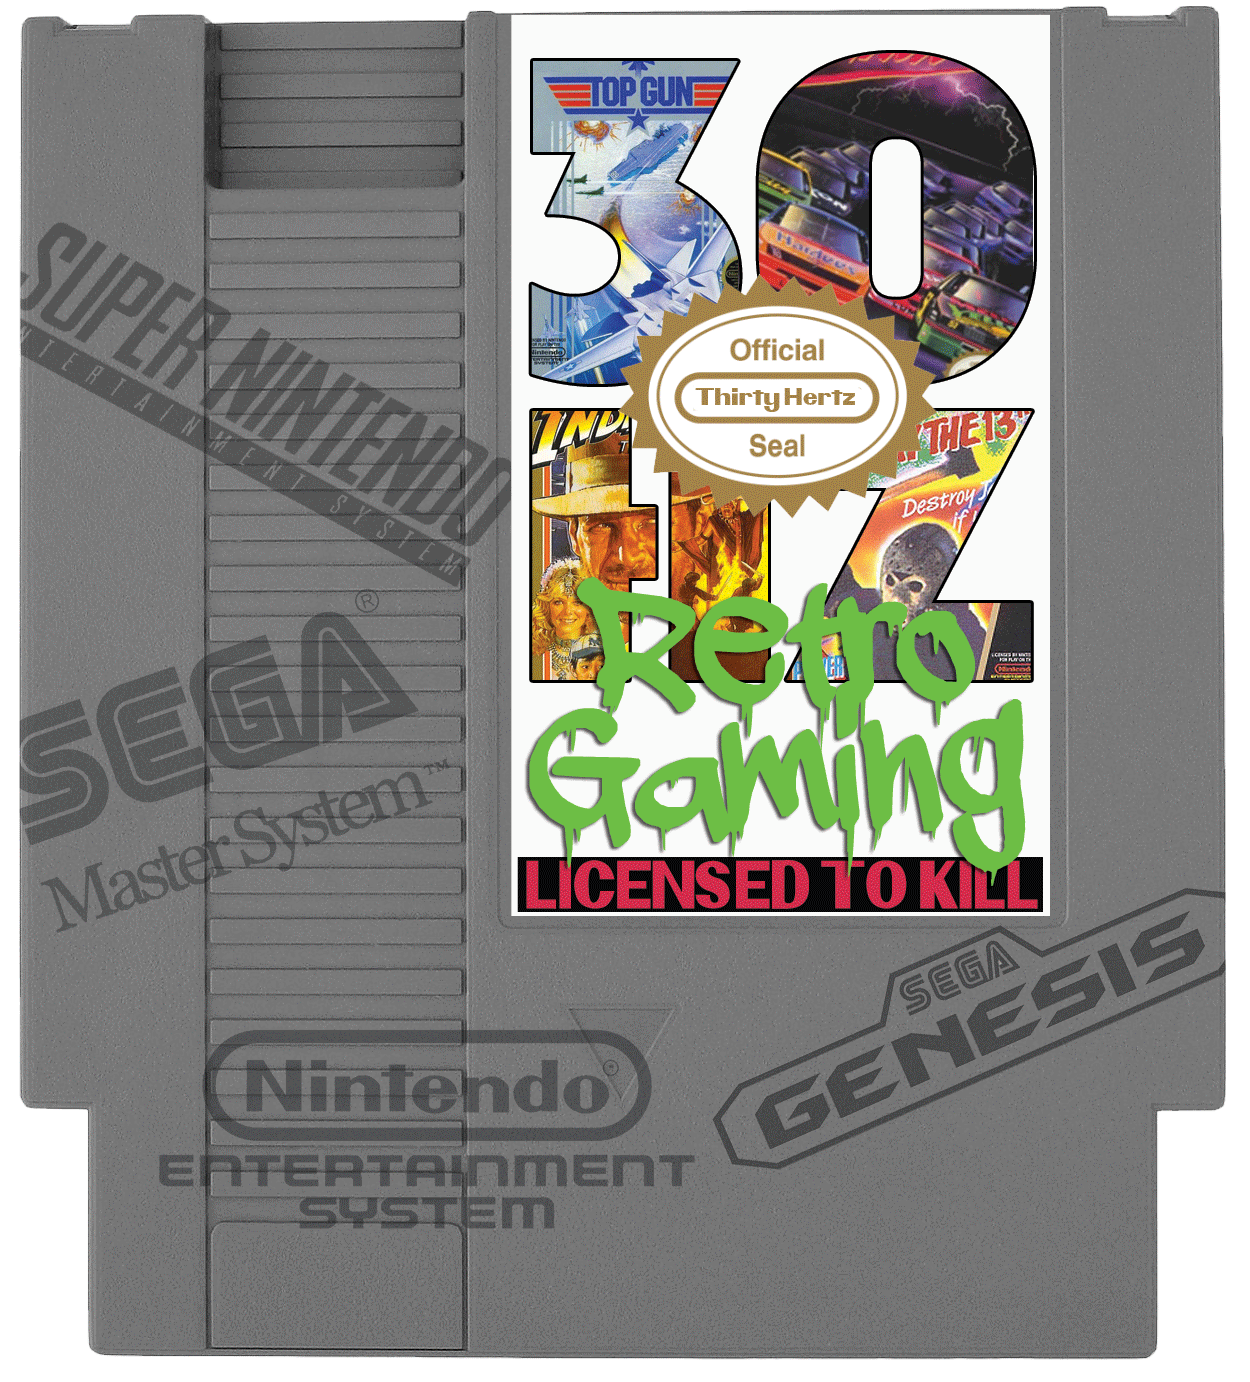 Licensed to Kill: A Retro Gaming Bl-g